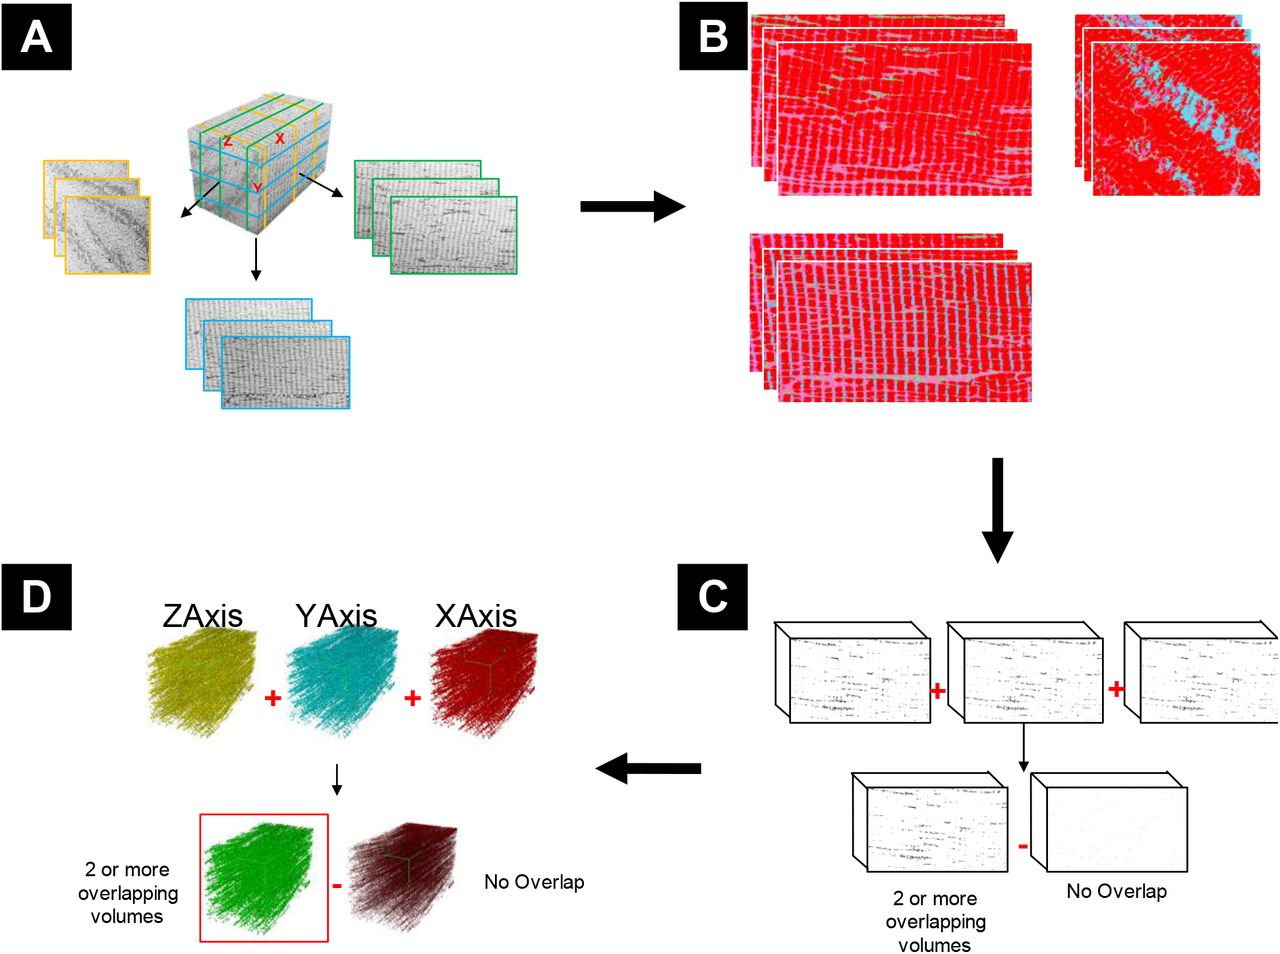 Automated methods for 3D Segmentation of Focused Ion Beam